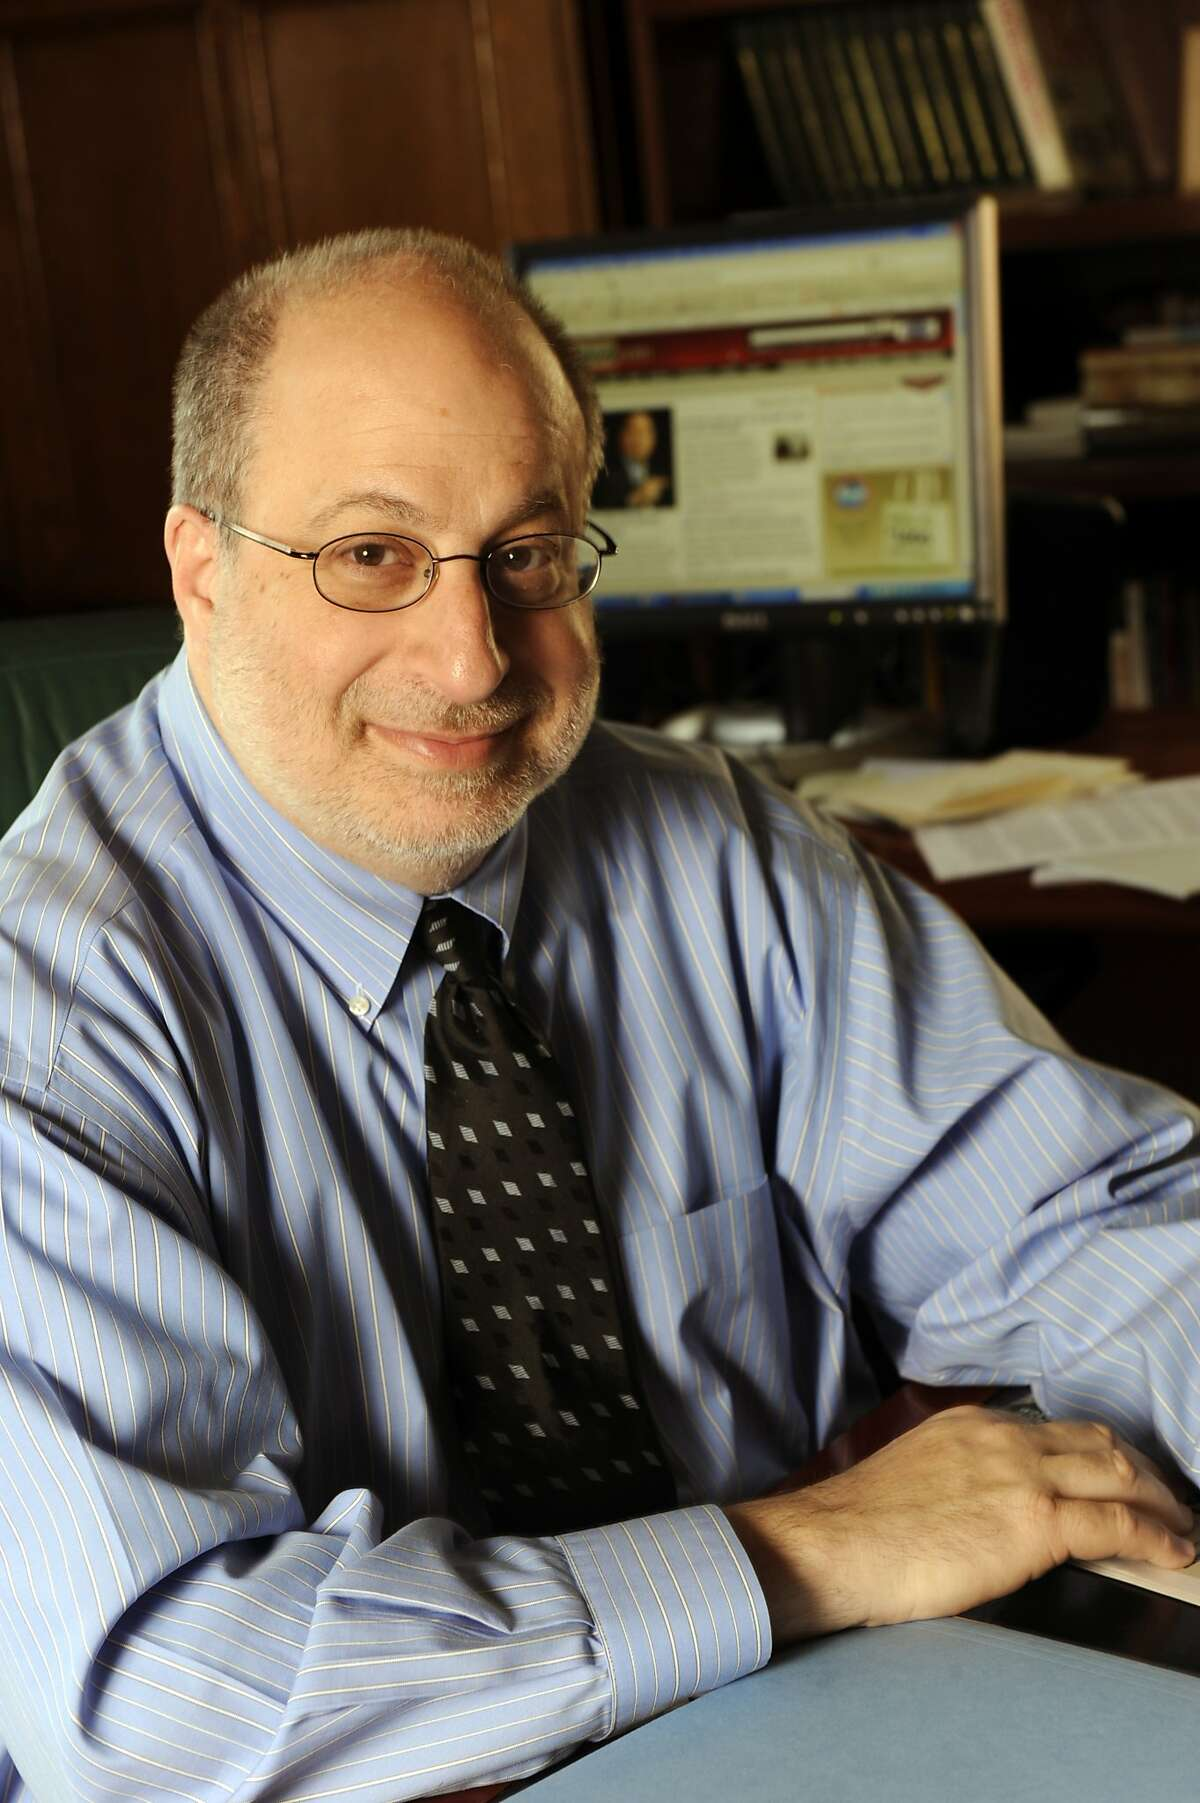 Detroit News Editor and Publisher Jonathan Wolman is seen in his office on April 27, 2009. Wolman, who previously worked as a reporter, Washington bureau chief and executive editor at The Associated Press, died Monday, April 15, 2019. He was 68. (Donna Terek/Detroit News via AP)